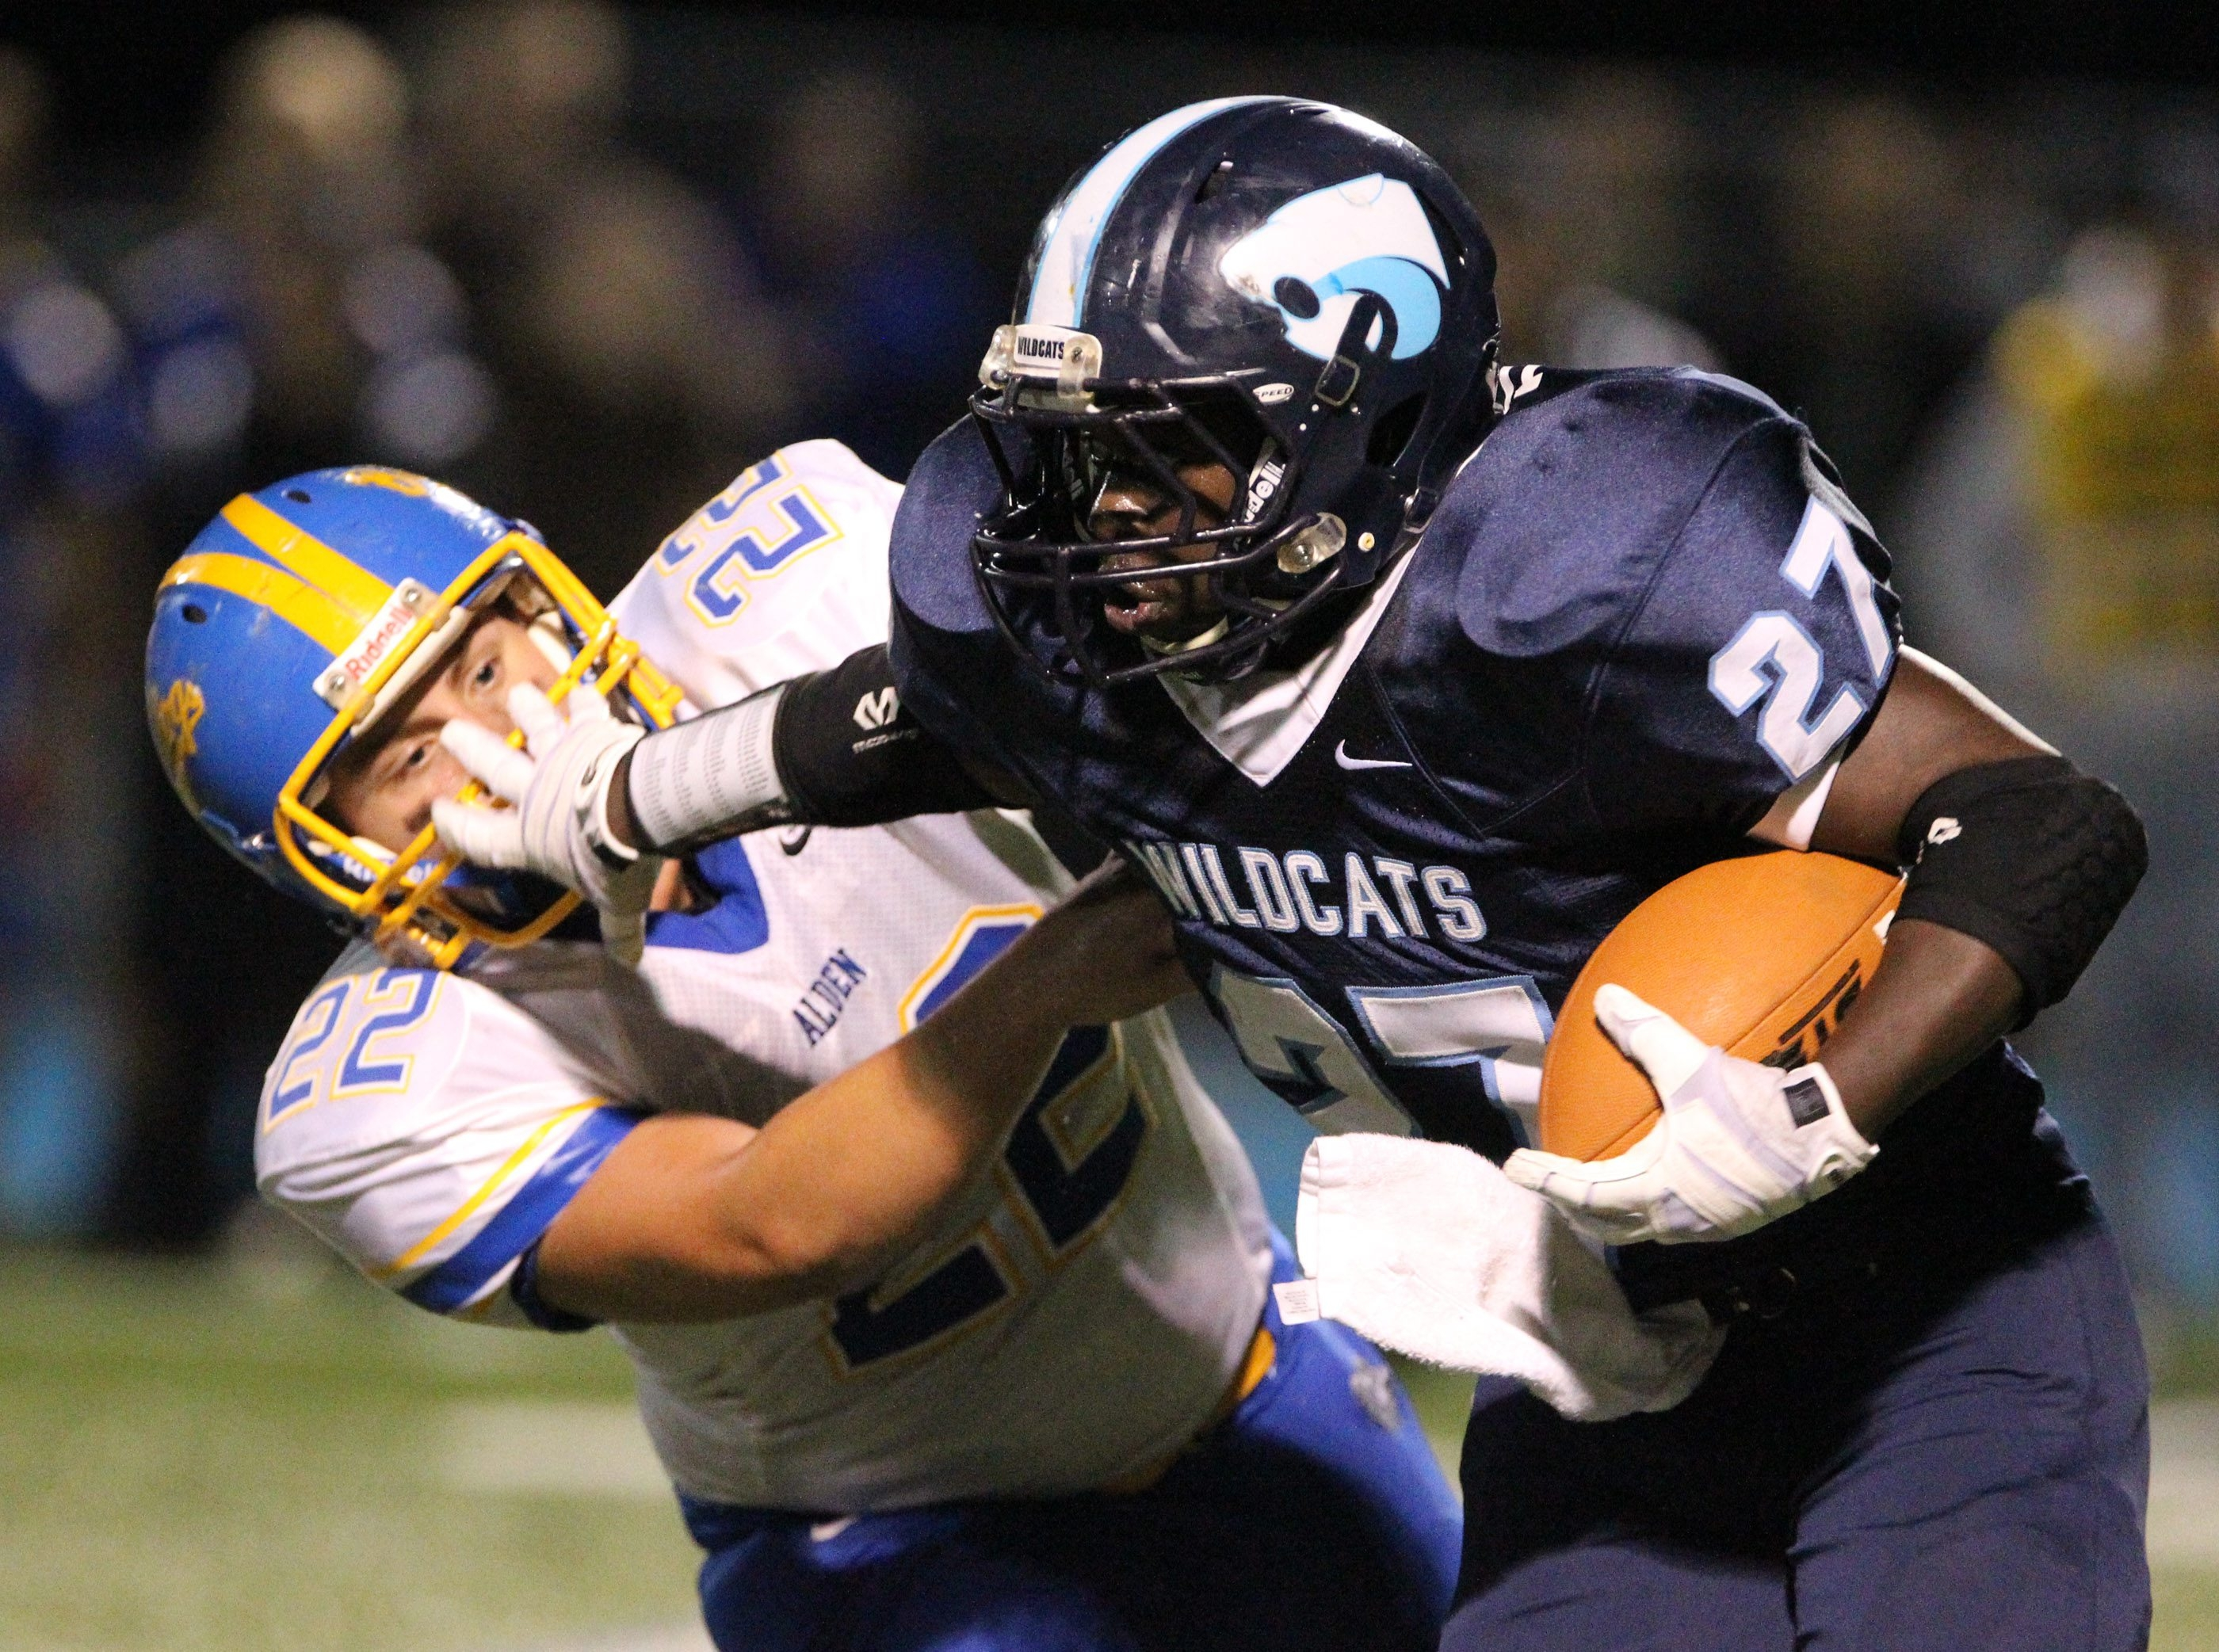 Depew's Rodney Turner rushes  past Alden's AJ Patterson for a first down against Alden's in the first quarter at Depew High School in Depew,NY on Friday, Sept. 27, 2013.  {James P. McCoy/ Buffalo News}